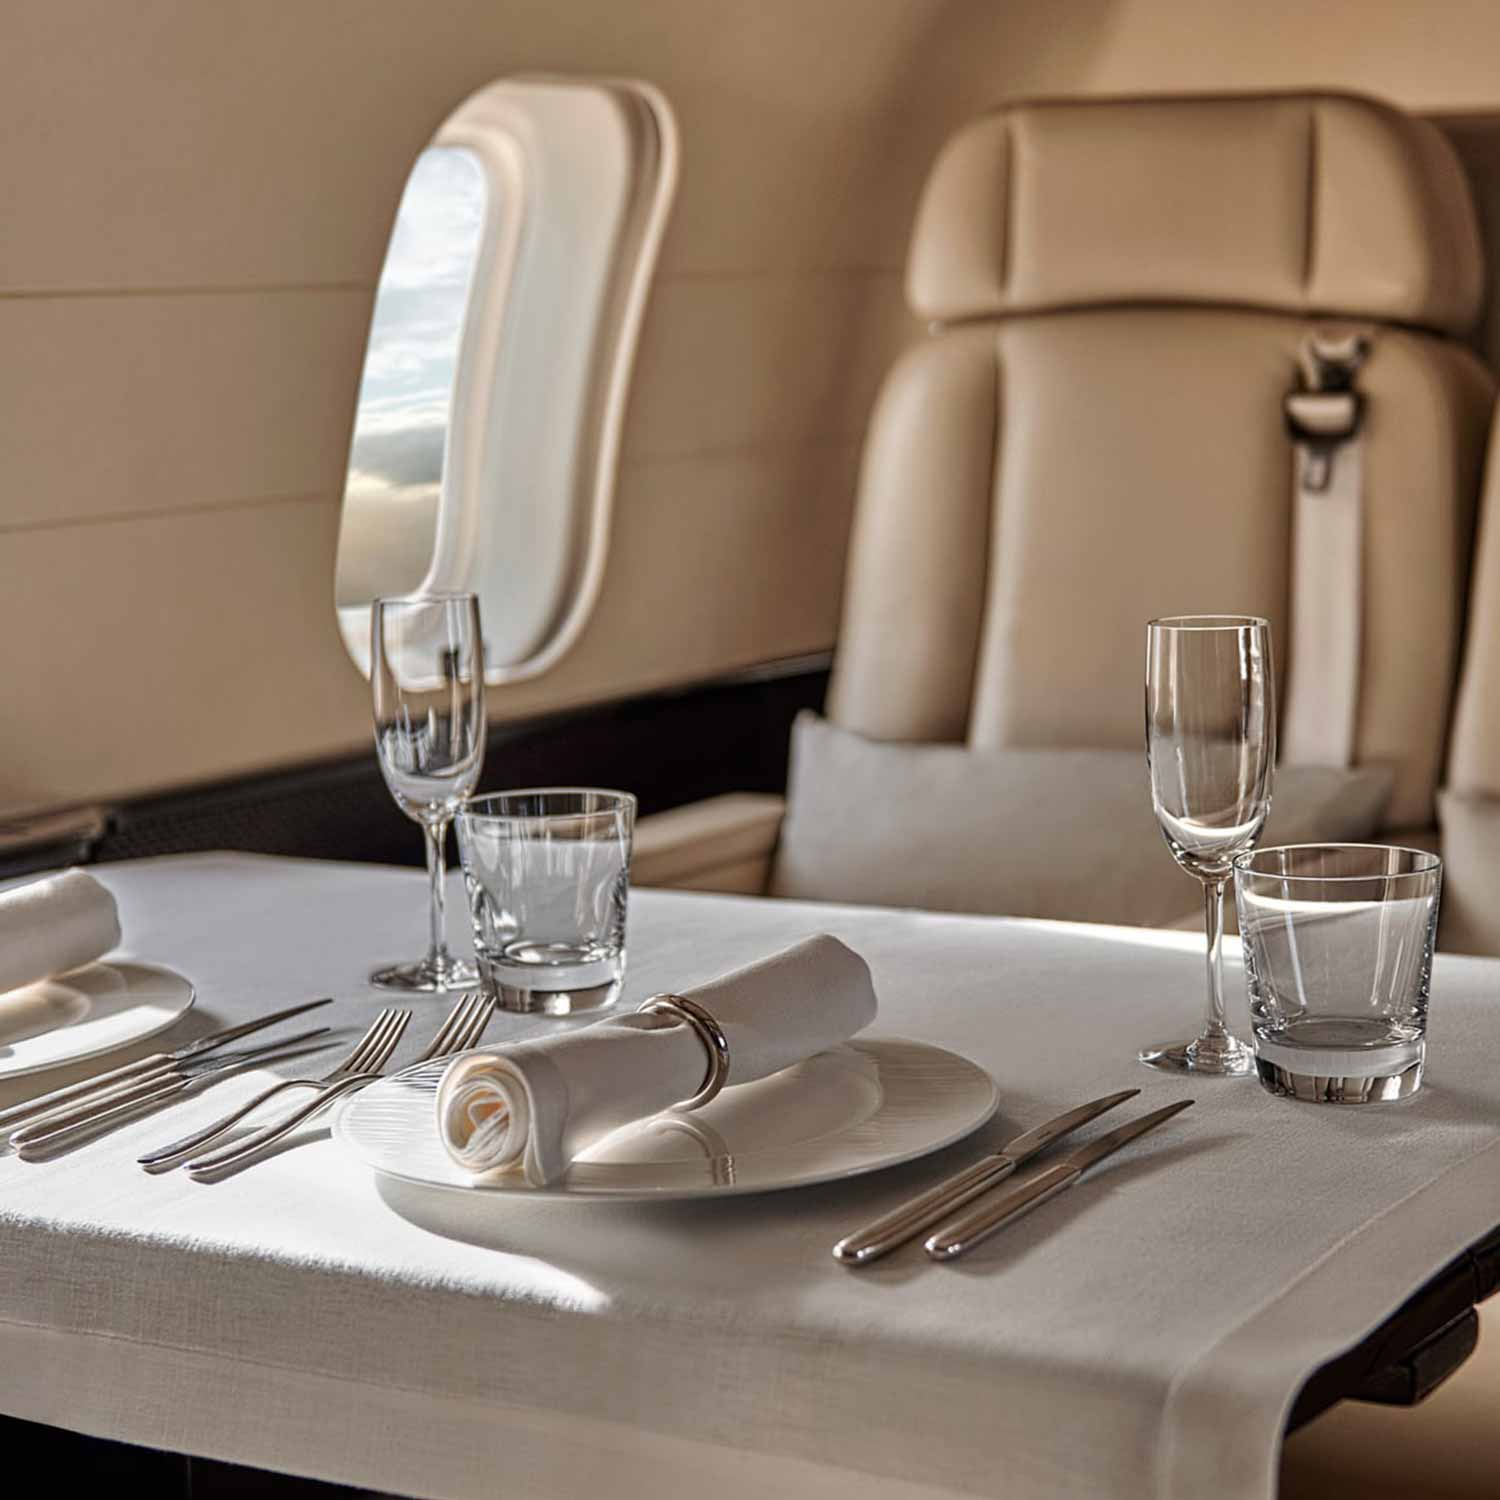 aman-jet_experience-dining-1500